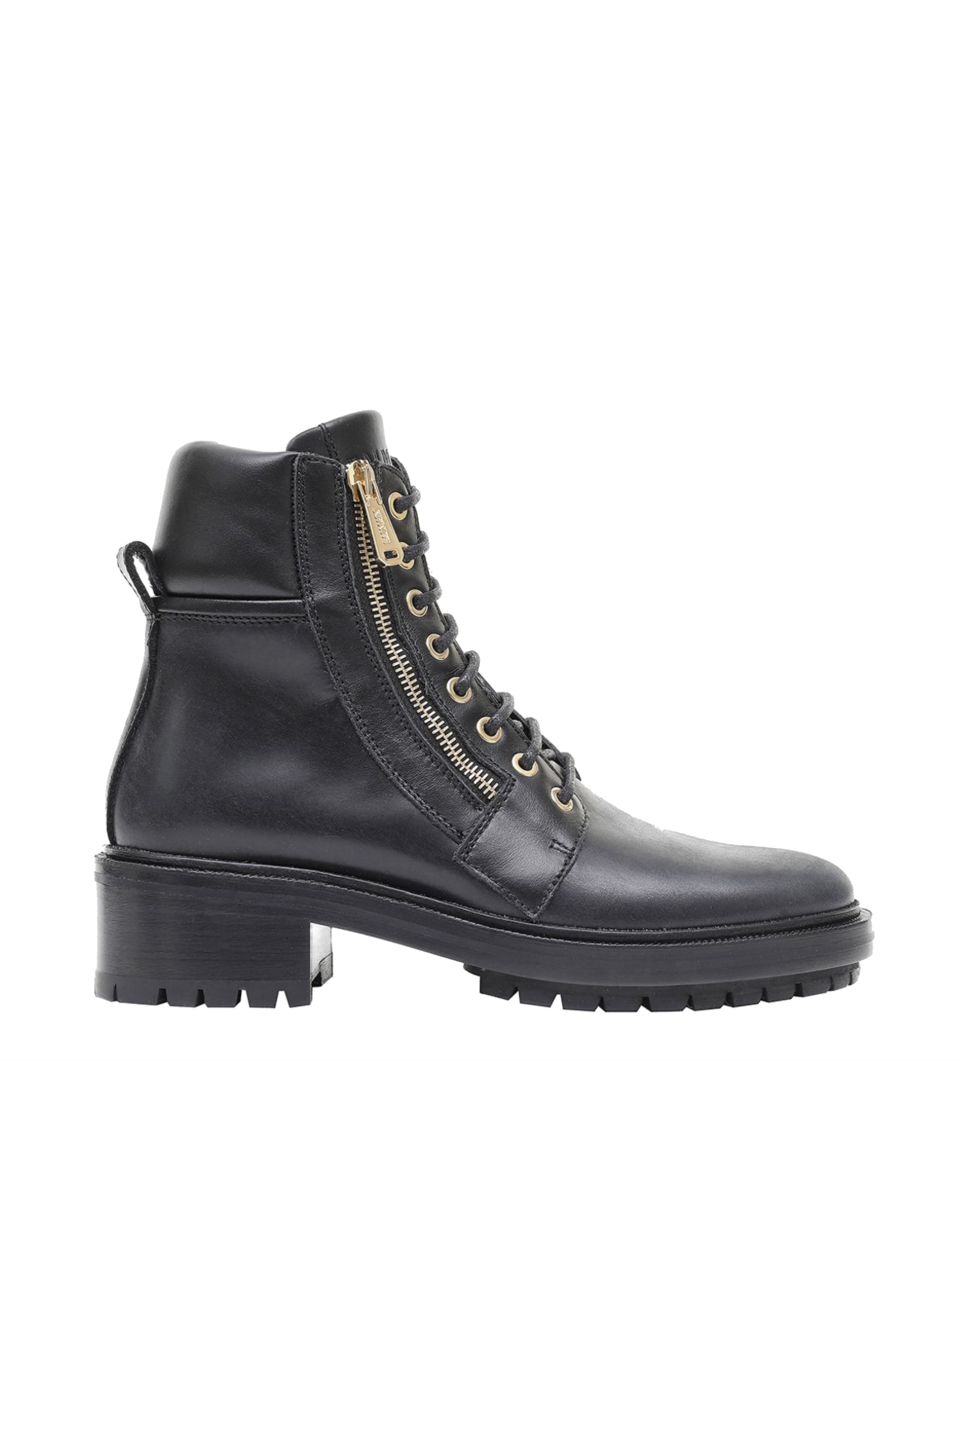 """<p><strong>Balmain</strong></p><p>balmain.com</p><p><strong>$1395.00</strong></p><p><a href=""""https://www.balmain.com/us/shoes-ranger-ranger-army-leather-ankle-boots_cod11577426nd.html?dept=btsbts"""" rel=""""nofollow noopener"""" target=""""_blank"""" data-ylk=""""slk:SHOP IT"""" class=""""link rapid-noclick-resp"""">SHOP IT</a></p><p>This ankle boot has the perfect amount of edginess, chunkiness, and sass. Whether you choose to rock it underneath your <a href=""""https://www.marieclaire.com/fashion/g22757196/fall-maxi-dresses/"""" rel=""""nofollow noopener"""" target=""""_blank"""" data-ylk=""""slk:fall maxi dress"""" class=""""link rapid-noclick-resp"""">fall maxi dress</a> or tuck your denim into the boot, it'll make a thundering fashion statement as you walk.</p>"""